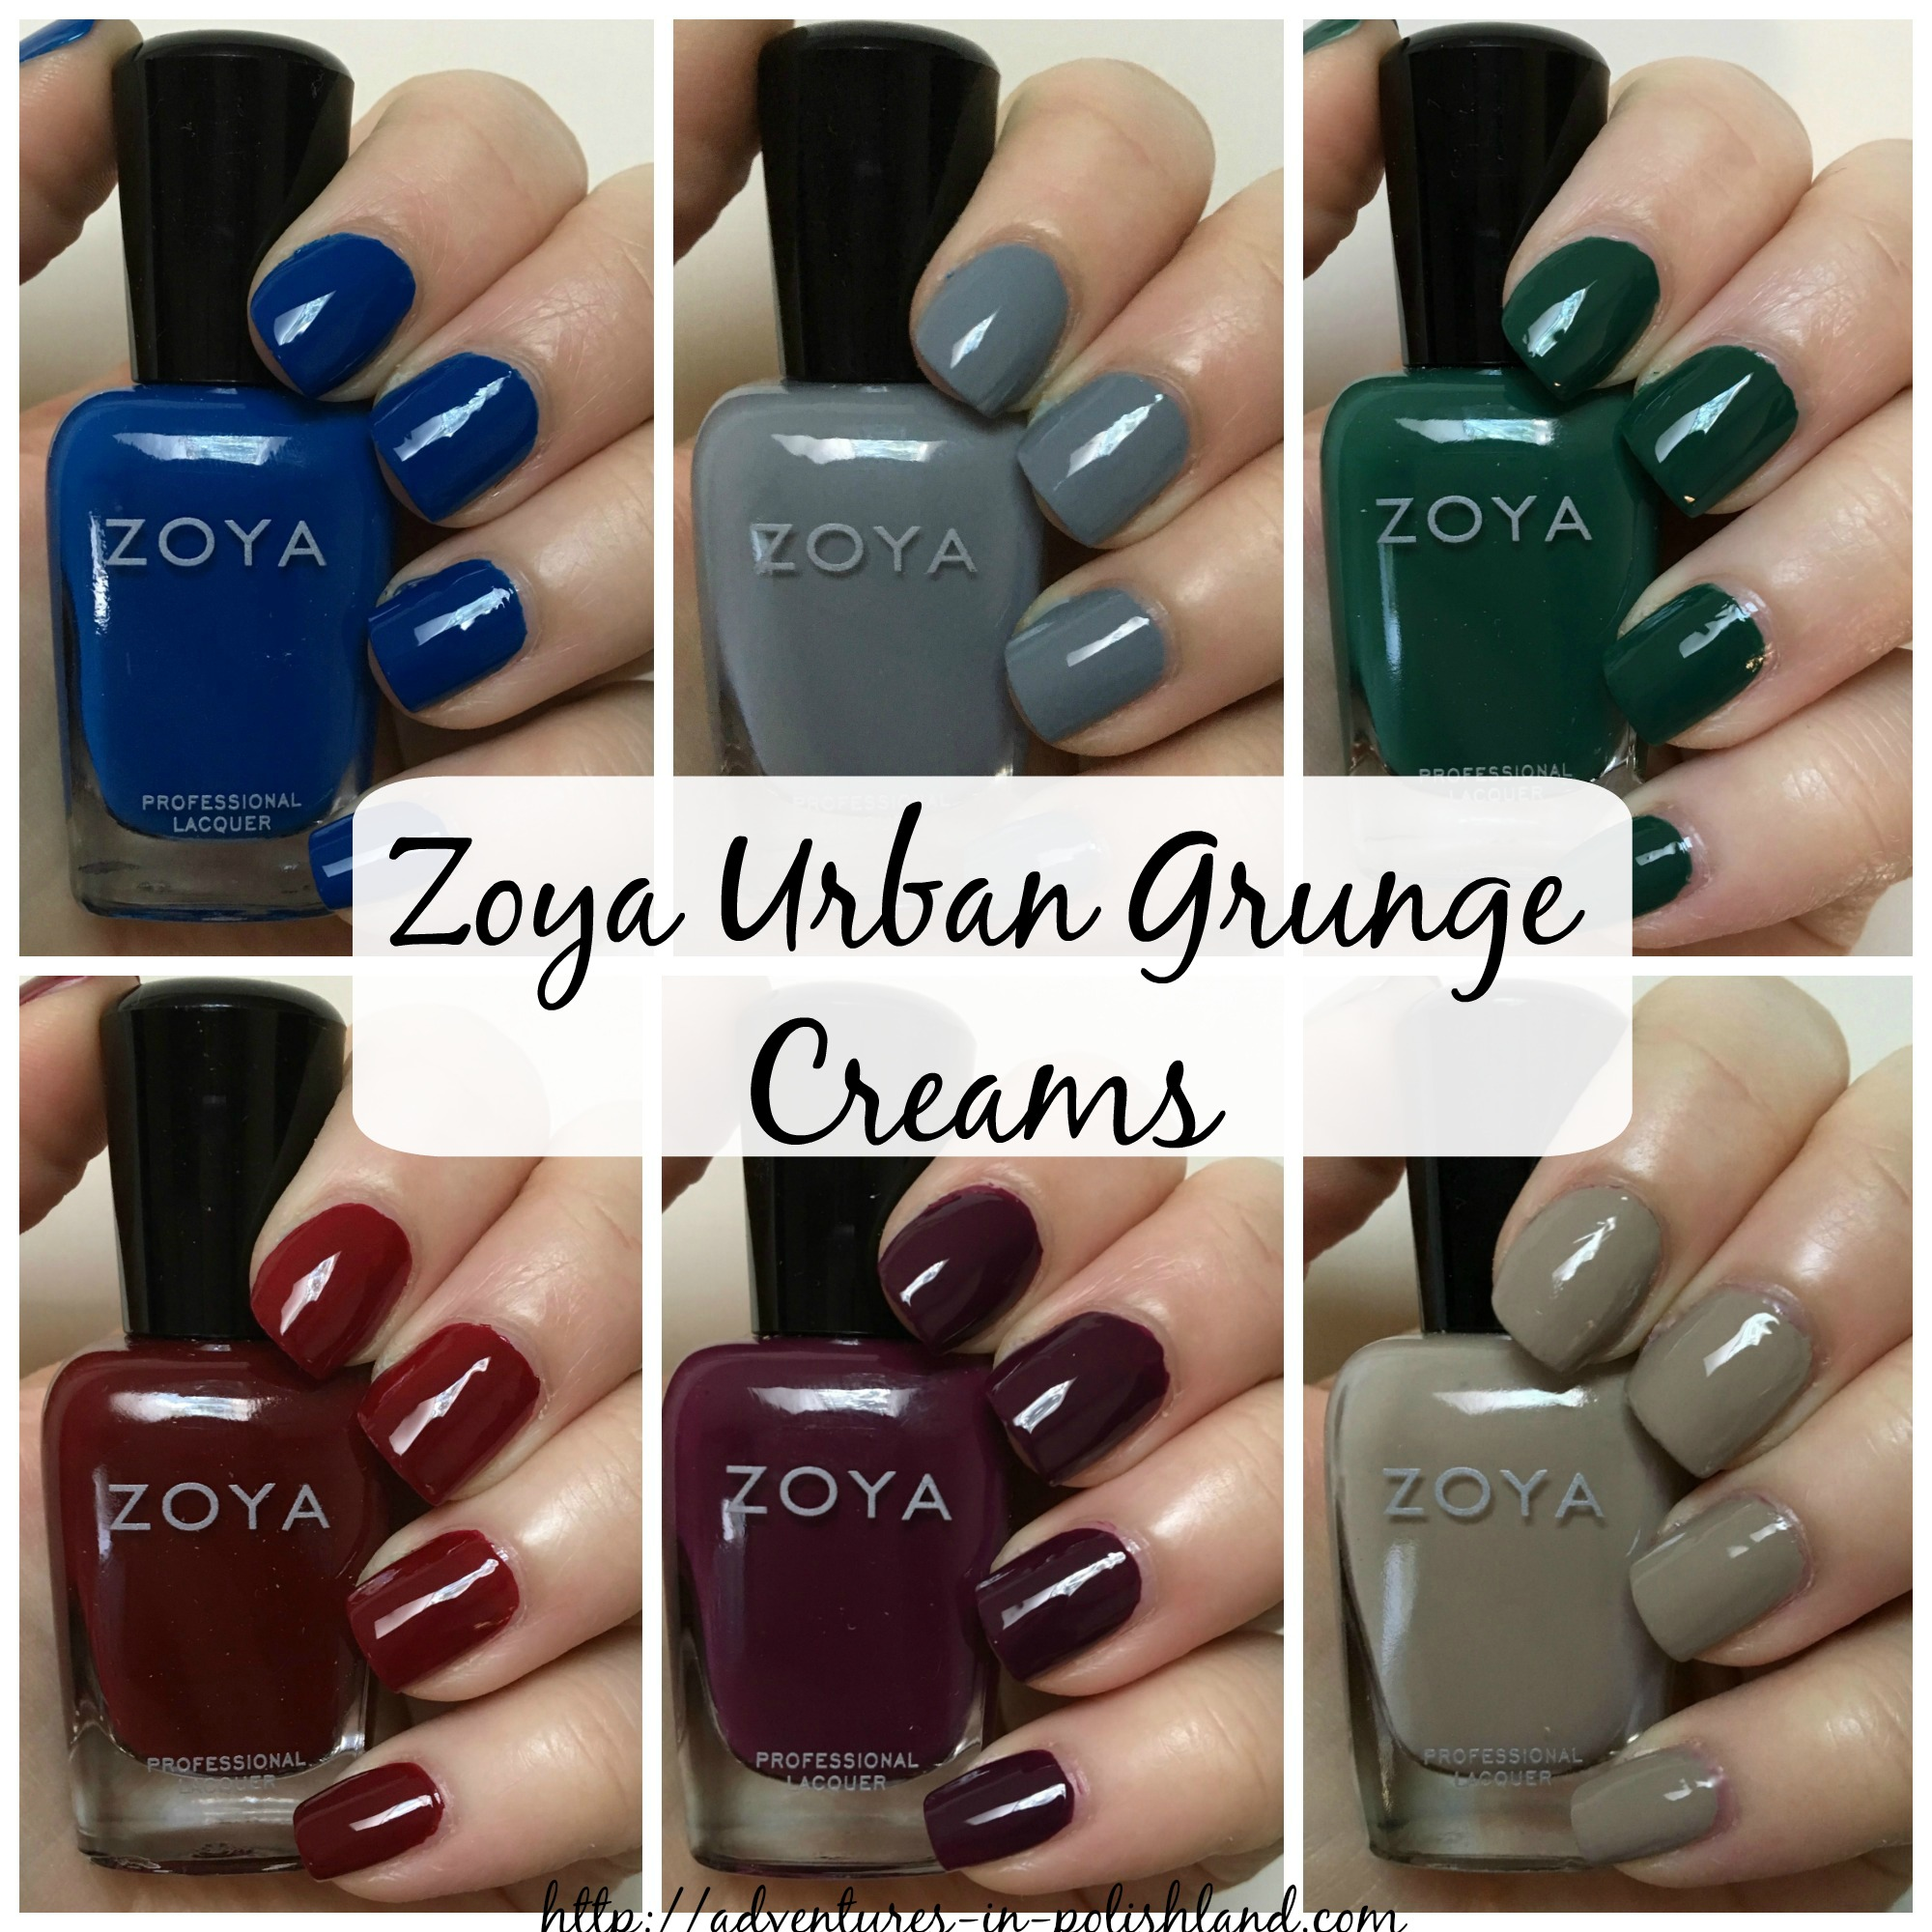 Zoya Nail Polish Urban Grunge Collection for Fall 2016 | Creams ...